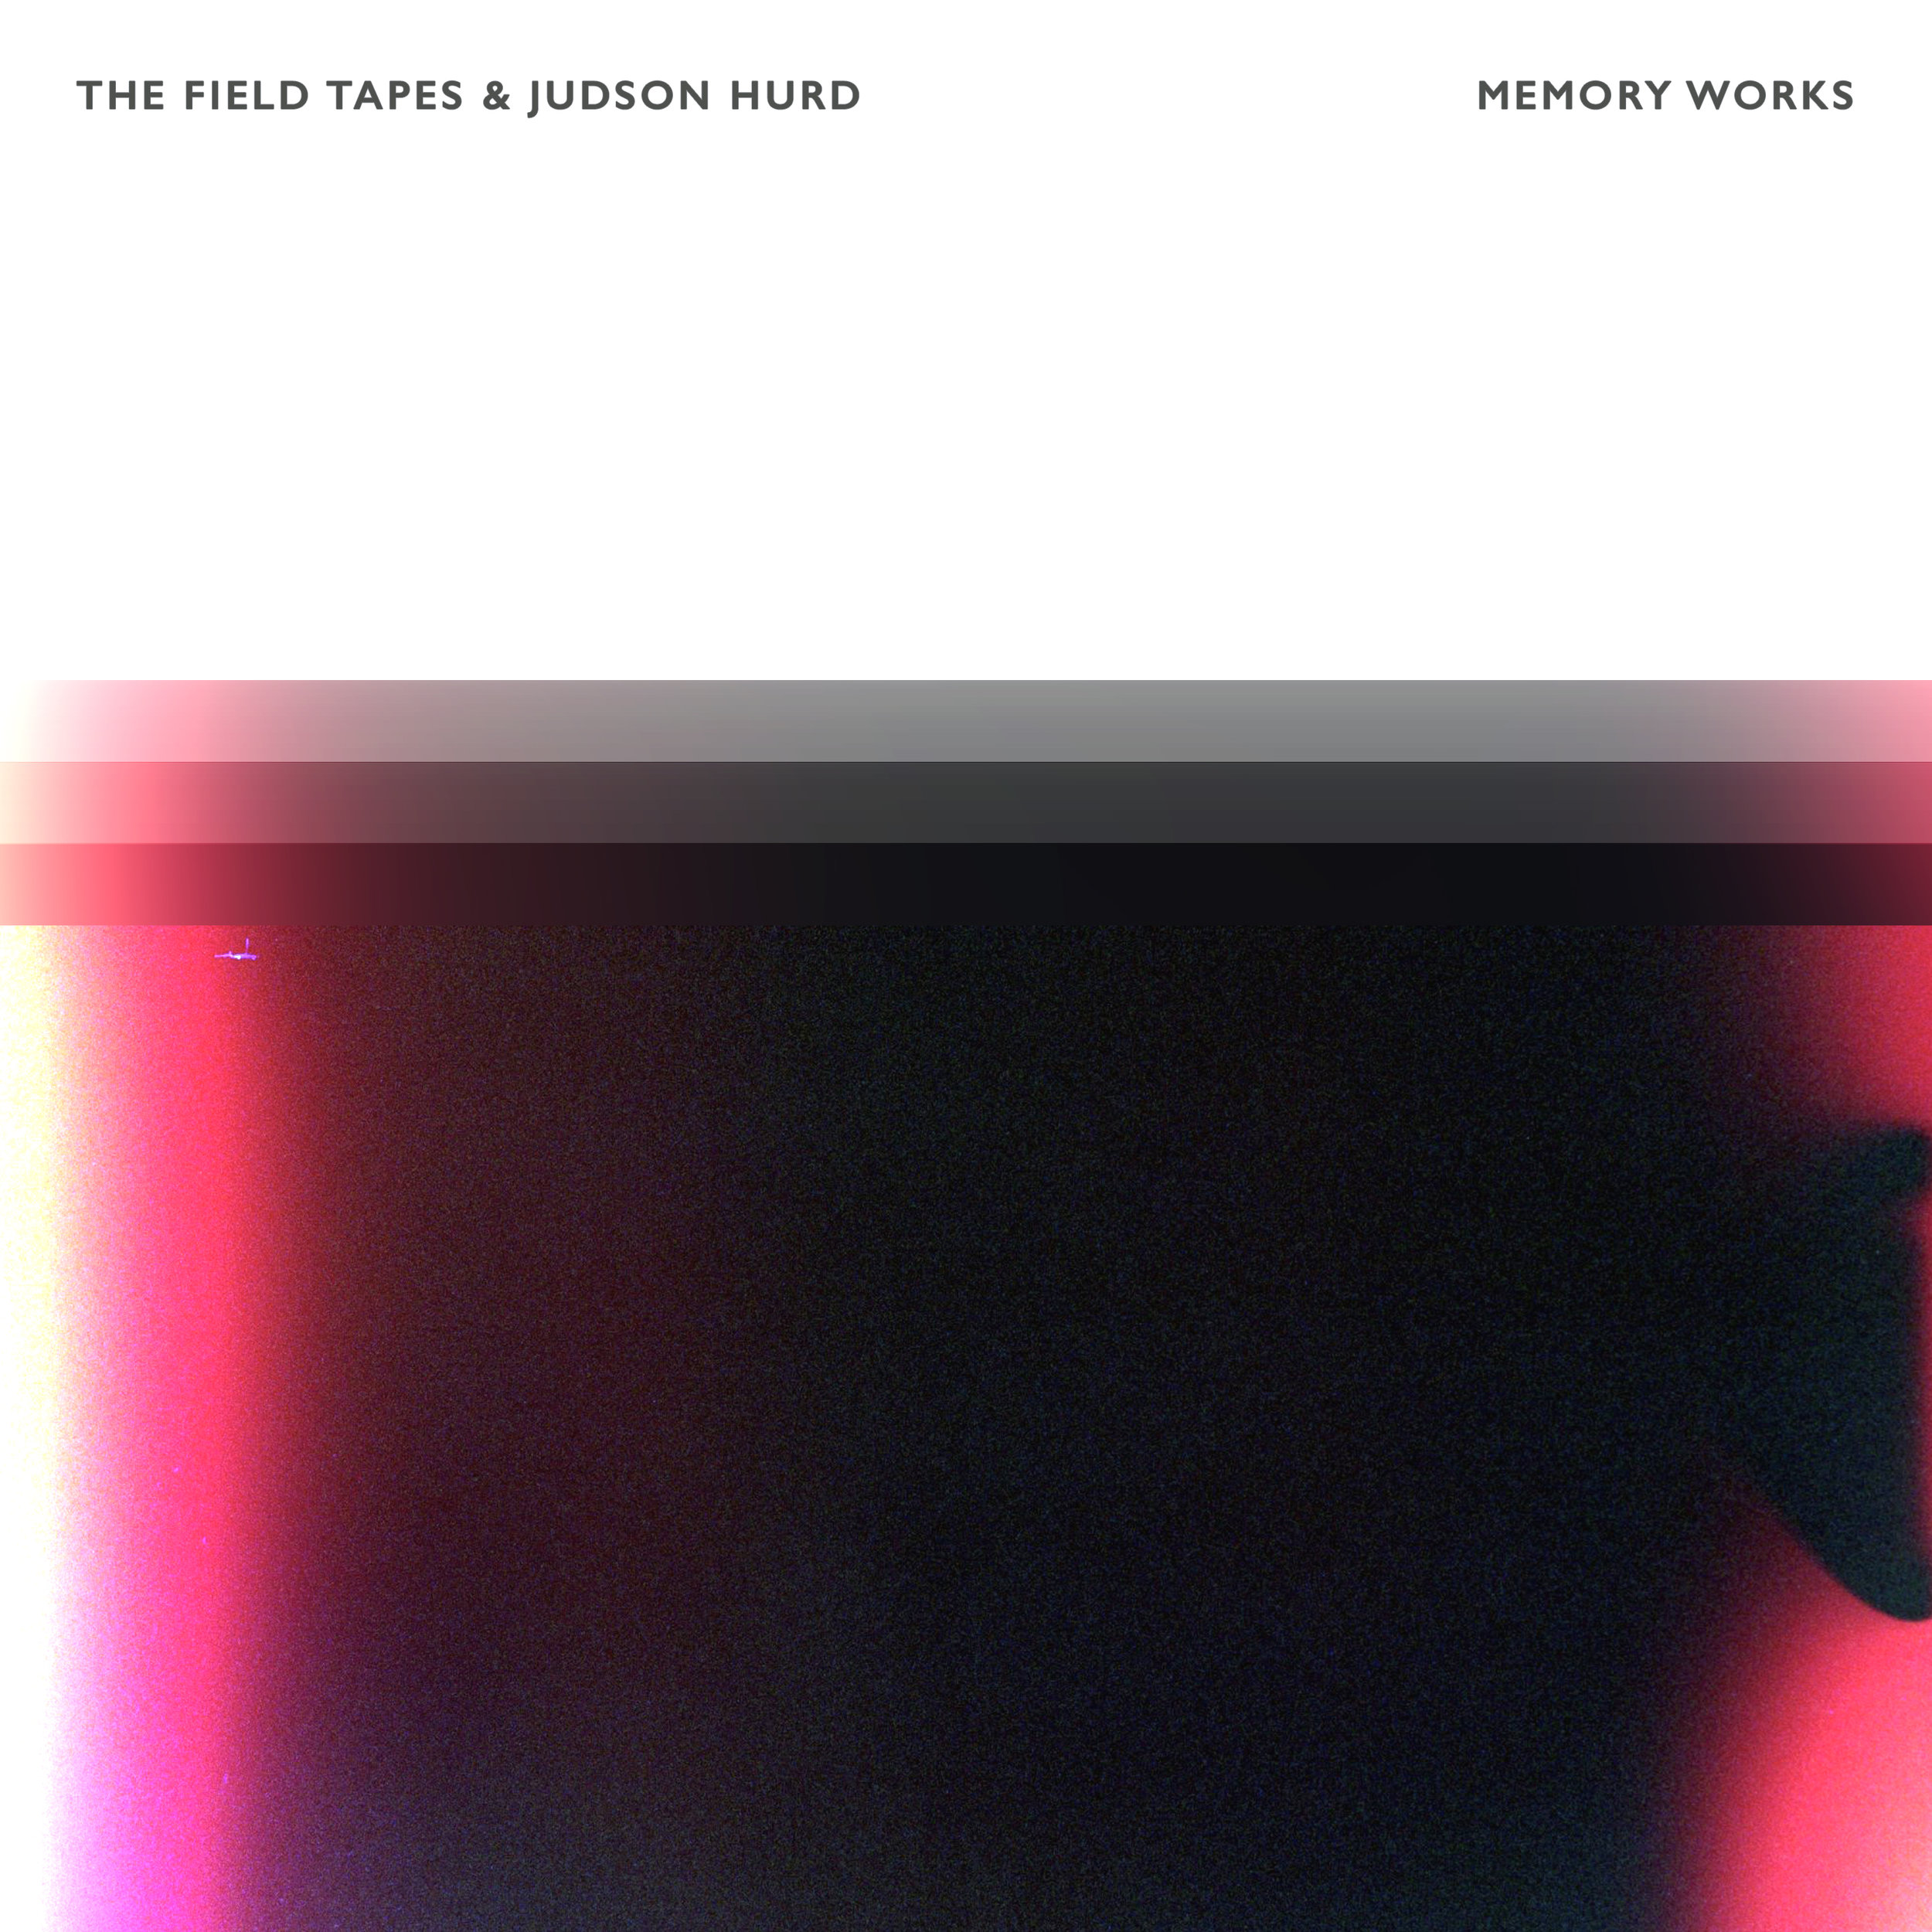 The Field Tapes & Judson Hurd - Memory Works